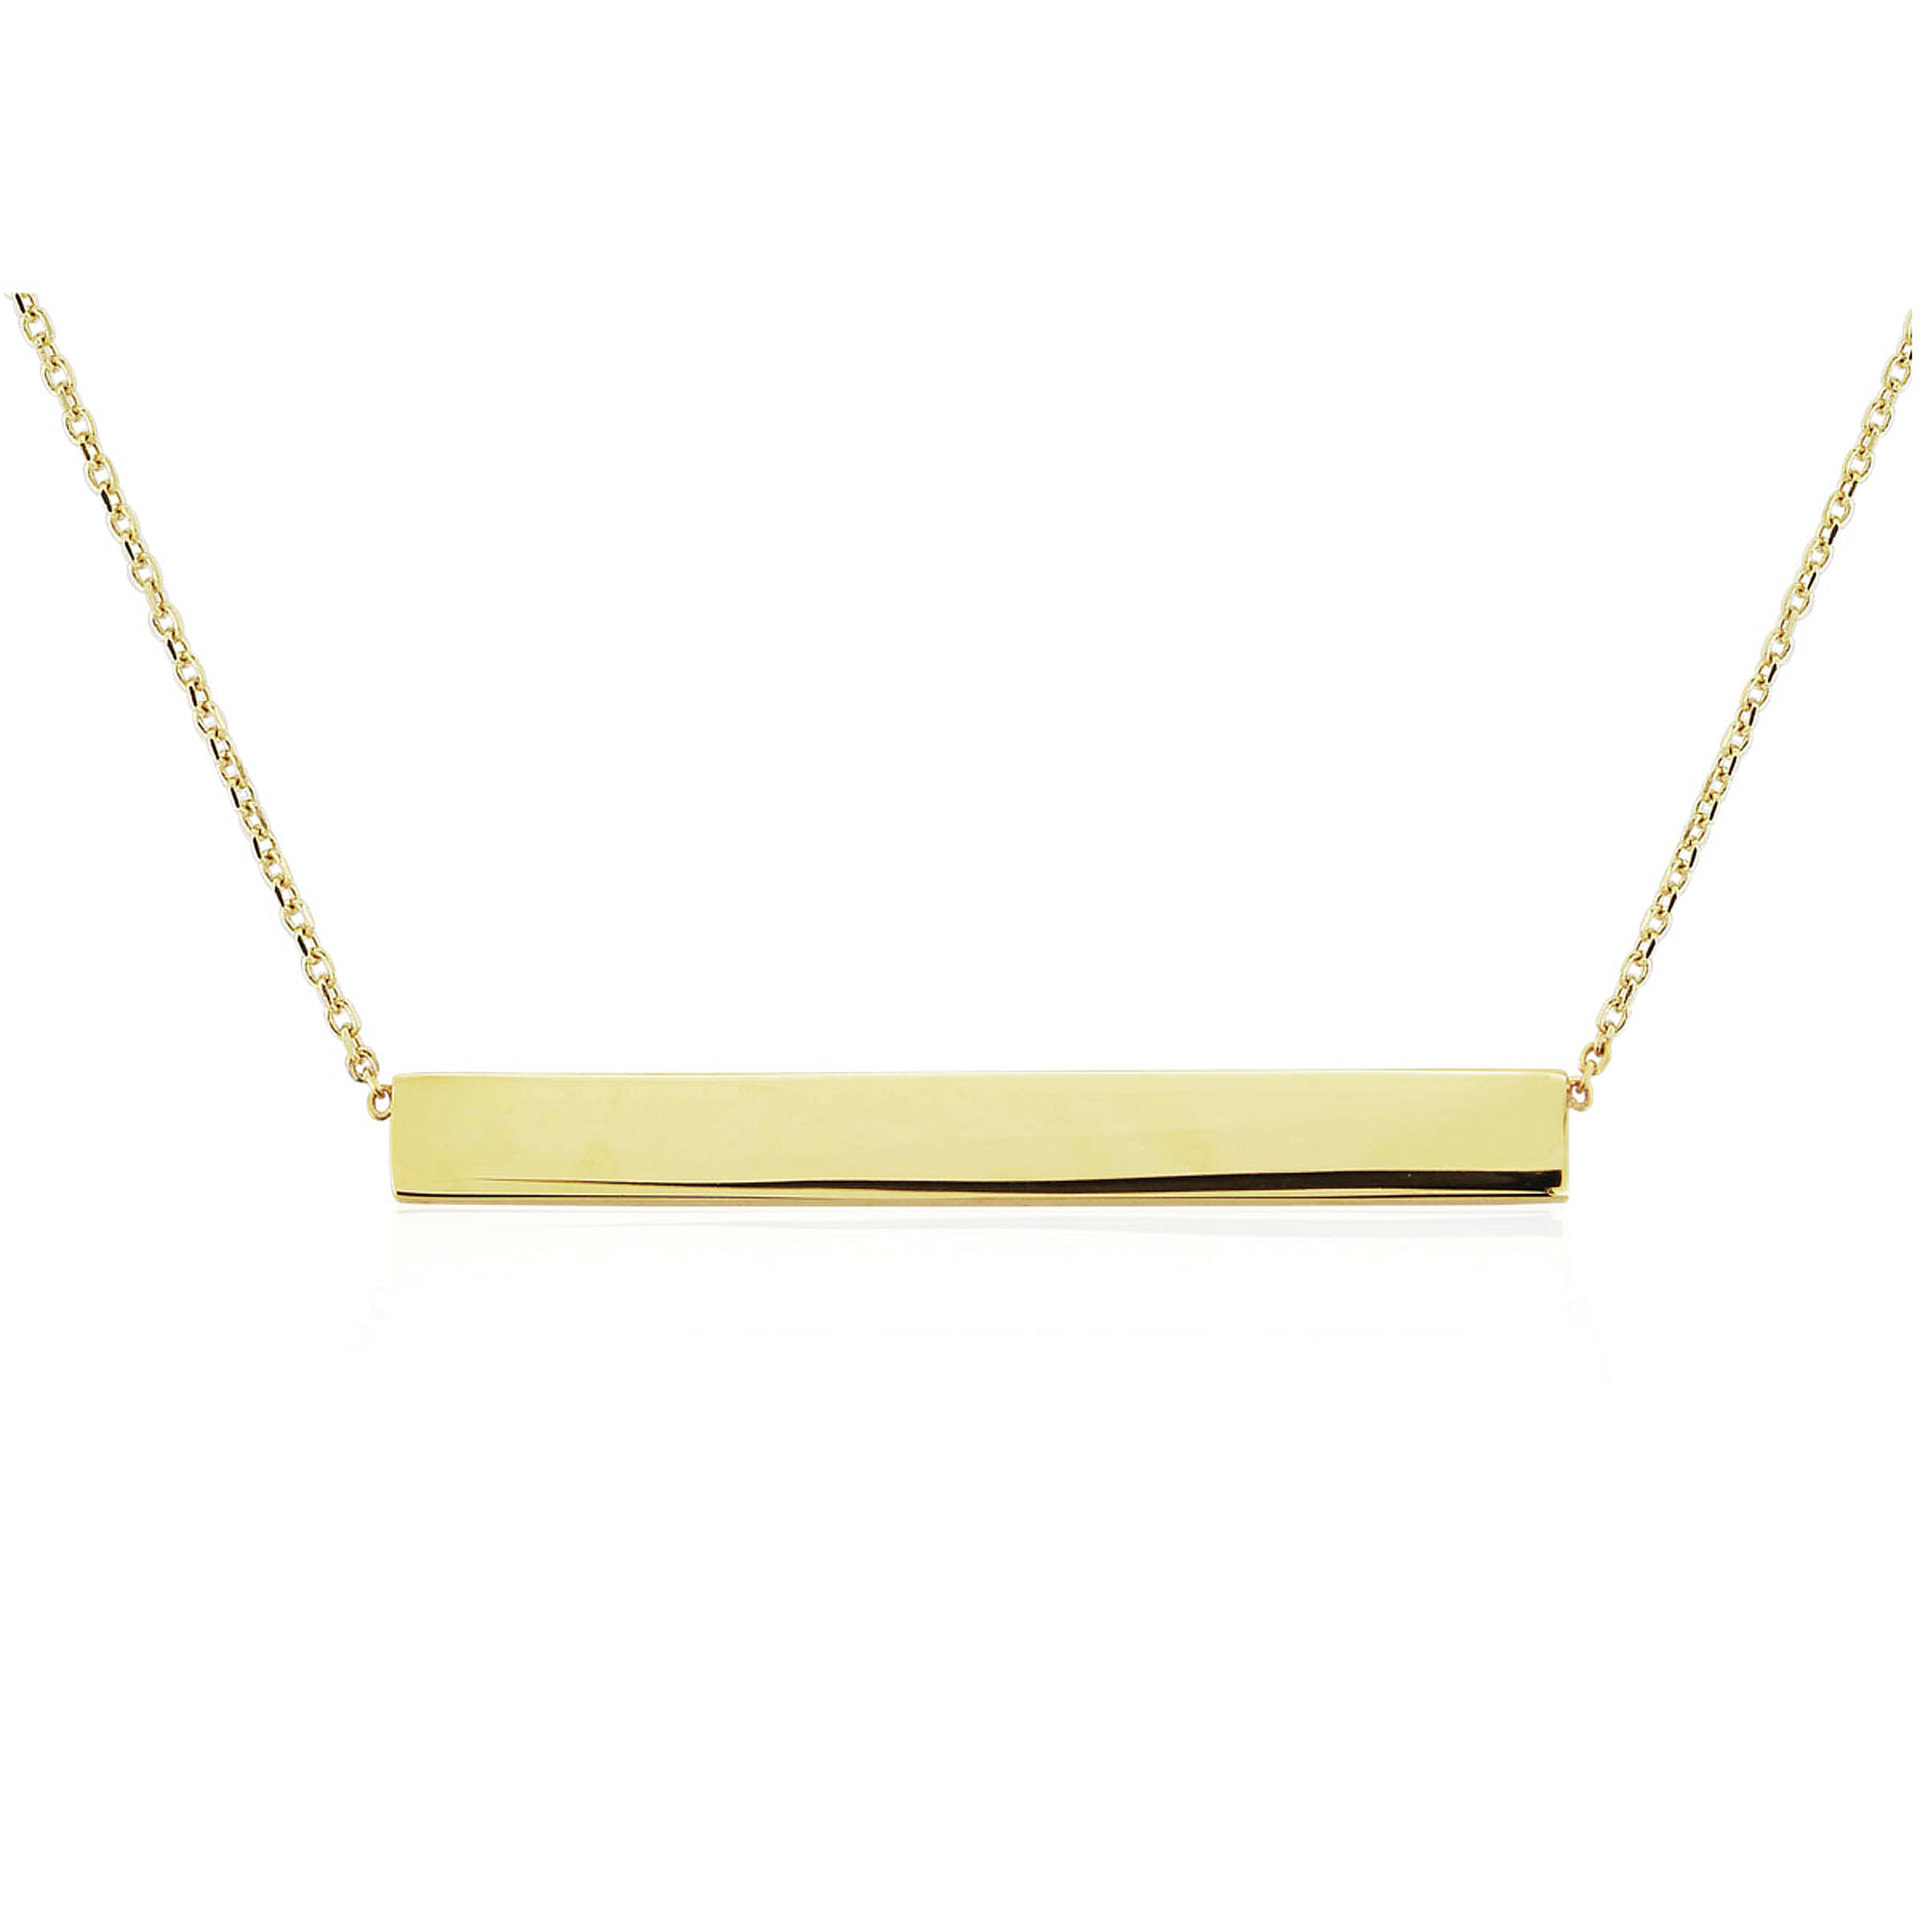 9ct Yellow Gold Bar Necklet